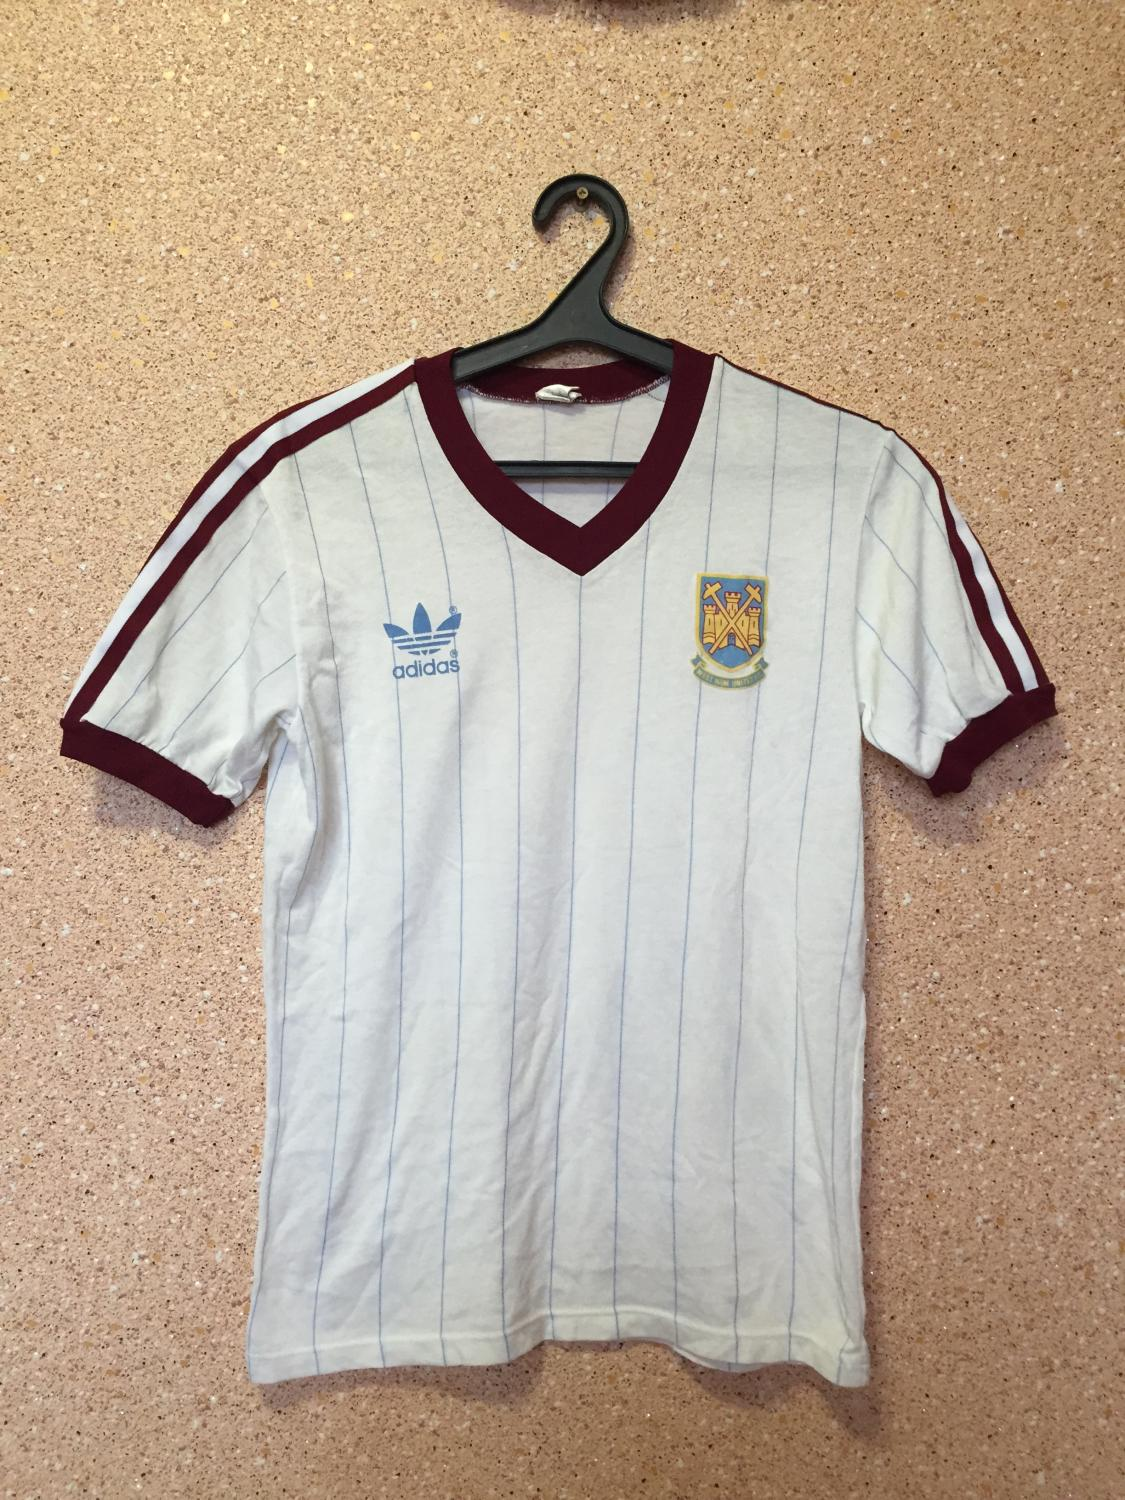 c739196bc25 West Ham United Away maglia di calcio 1983 - 1985. Sponsored by no ...